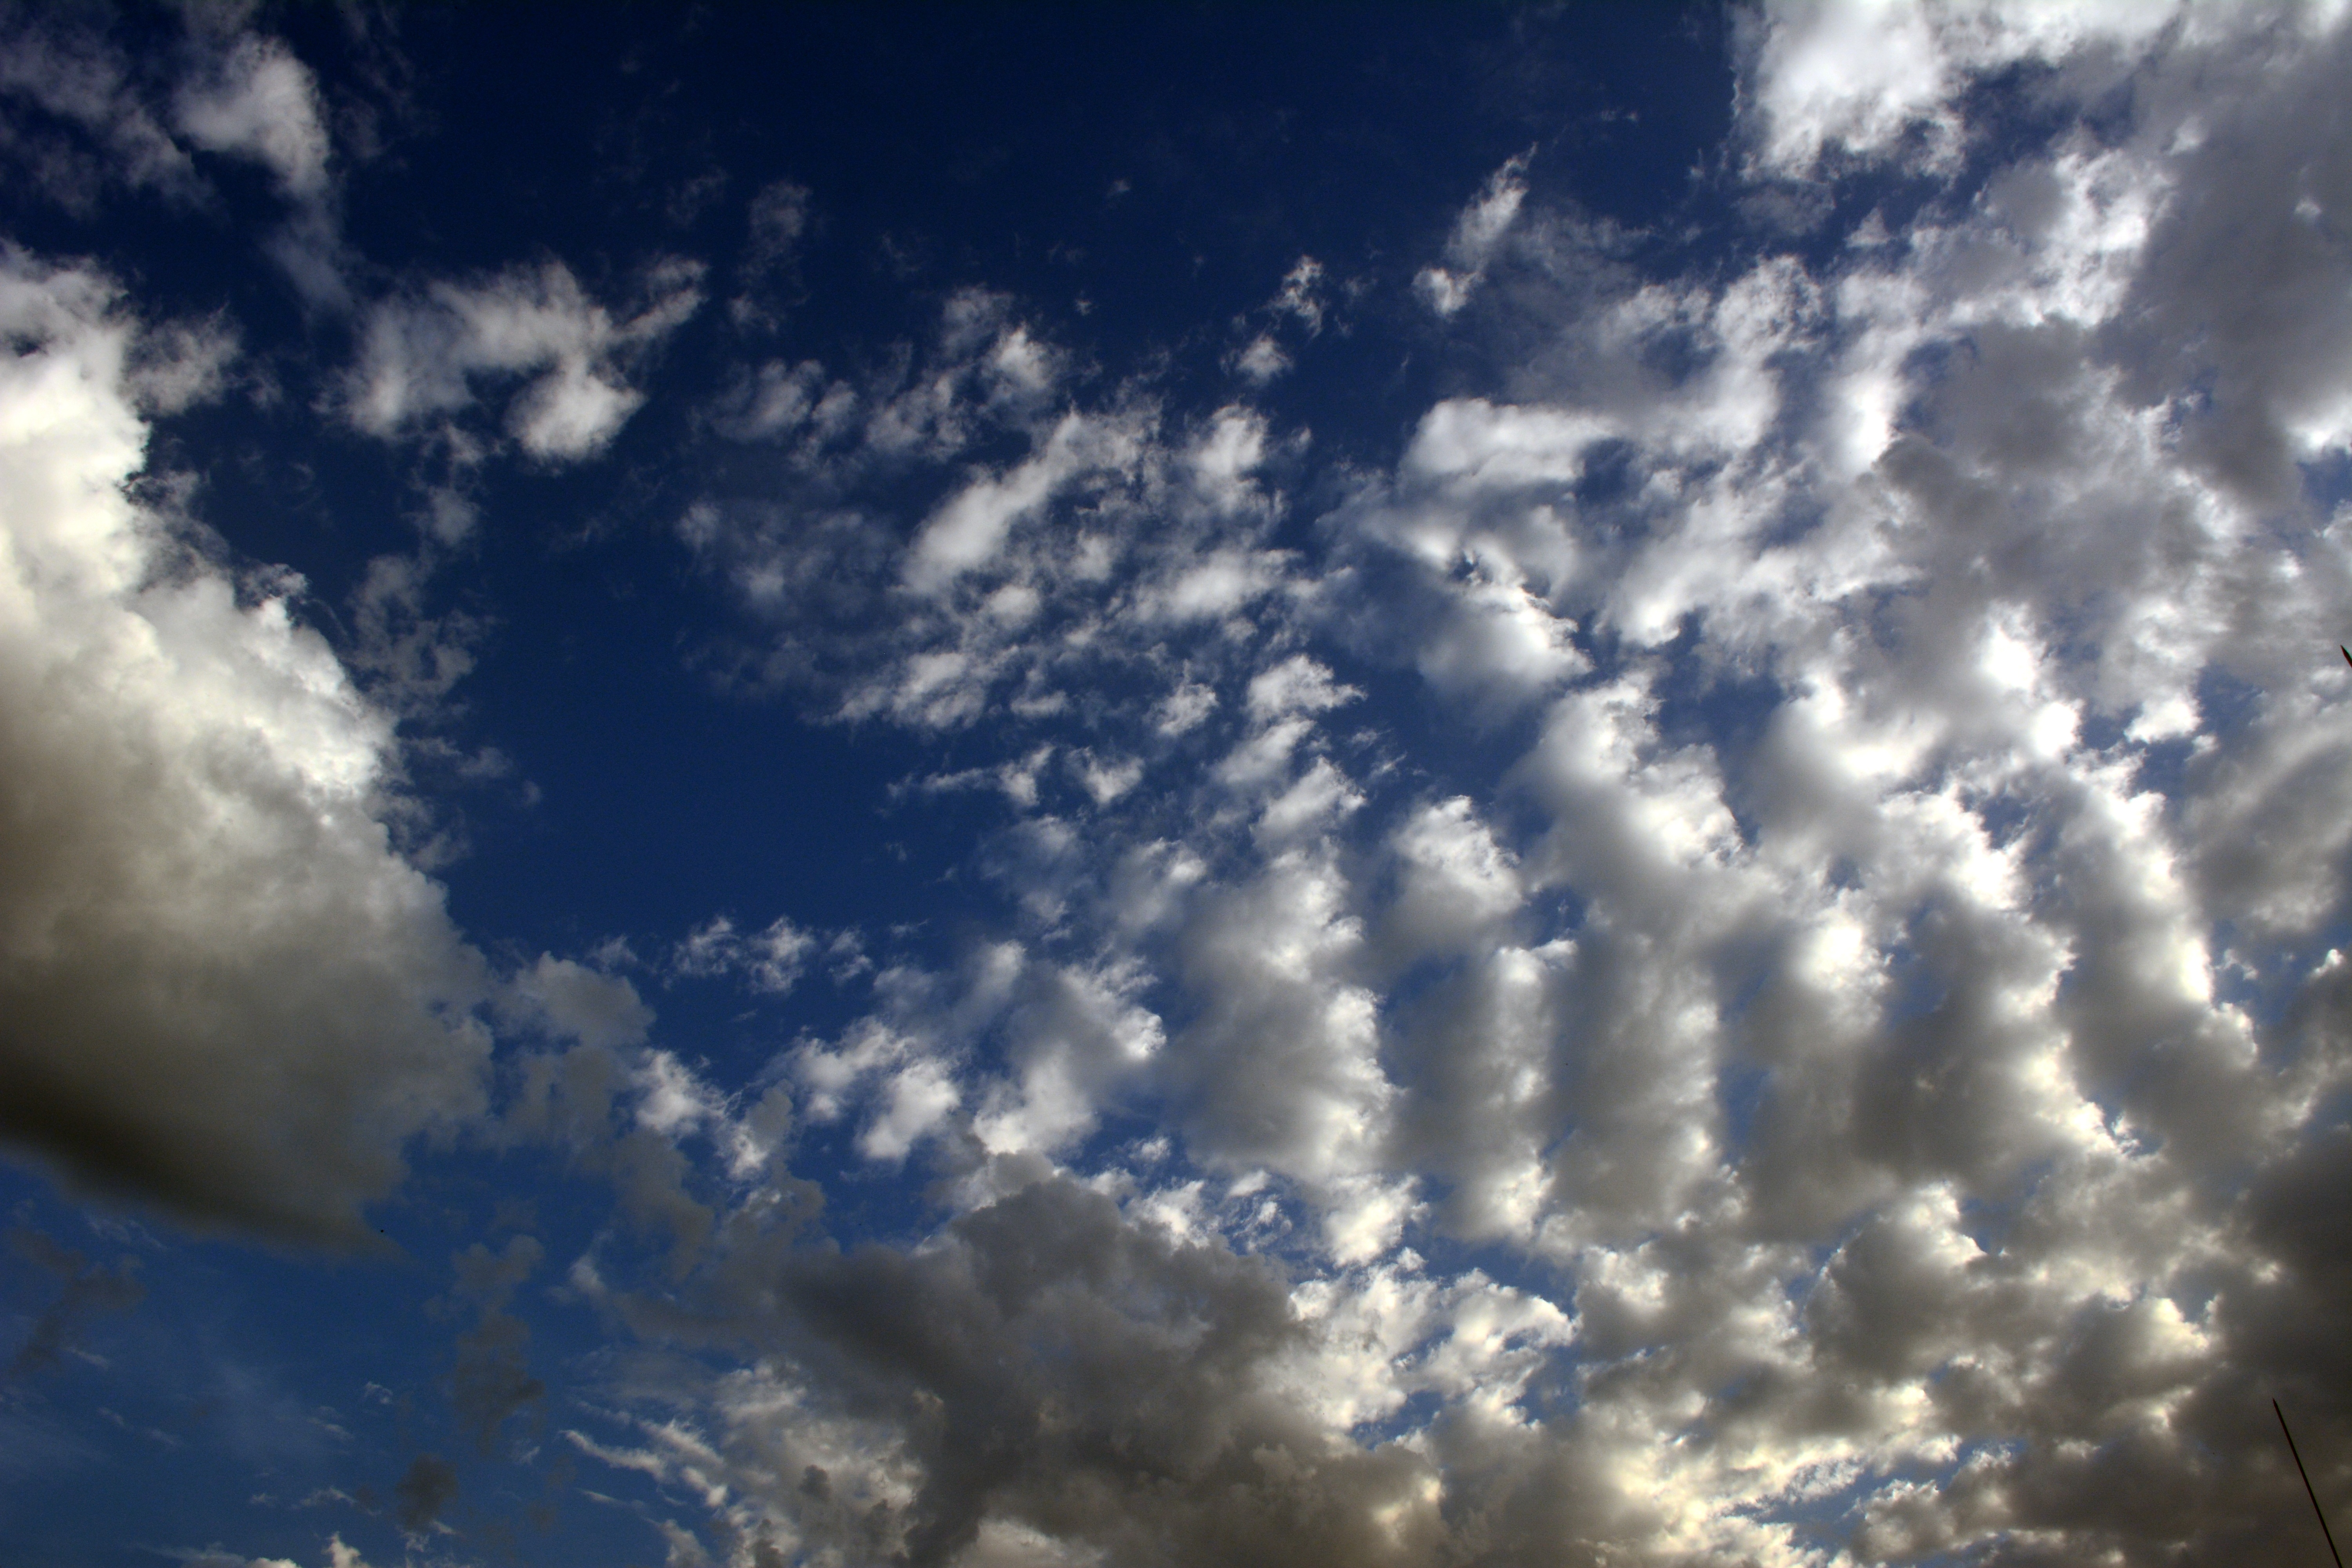 Sky, Nature, Cloudy, Cloud, Above, HQ Photo